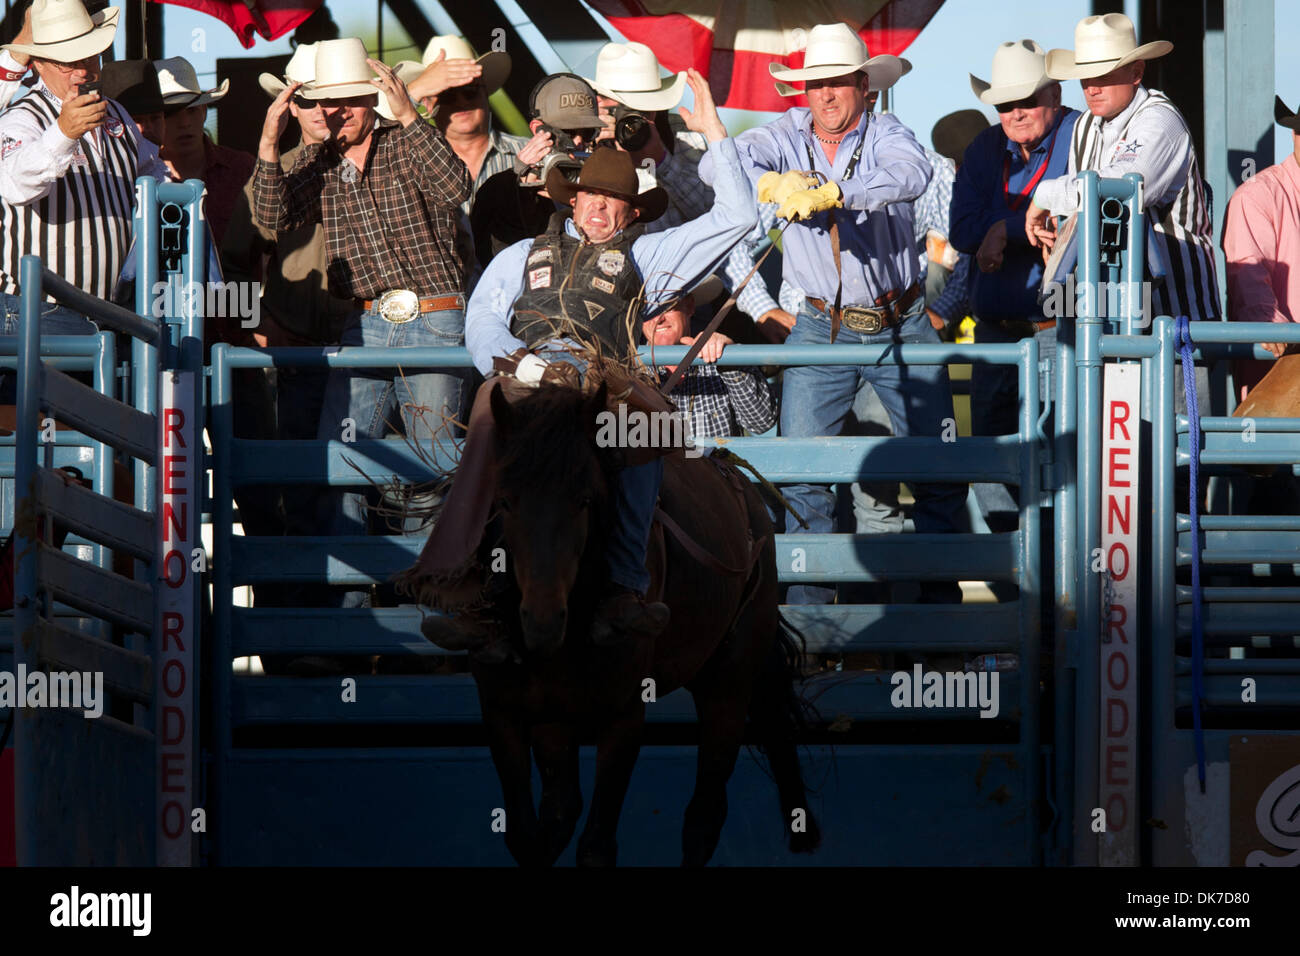 June 20, 2011 - Reno, Nevada, U.S - George Gillespie IV of Placerville, CA rides Commotion Toddy at the Reno Rodeo. (Credit Image: © Matt Cohen/Southcreek Global/ZUMAPRESS.com) - Stock Image